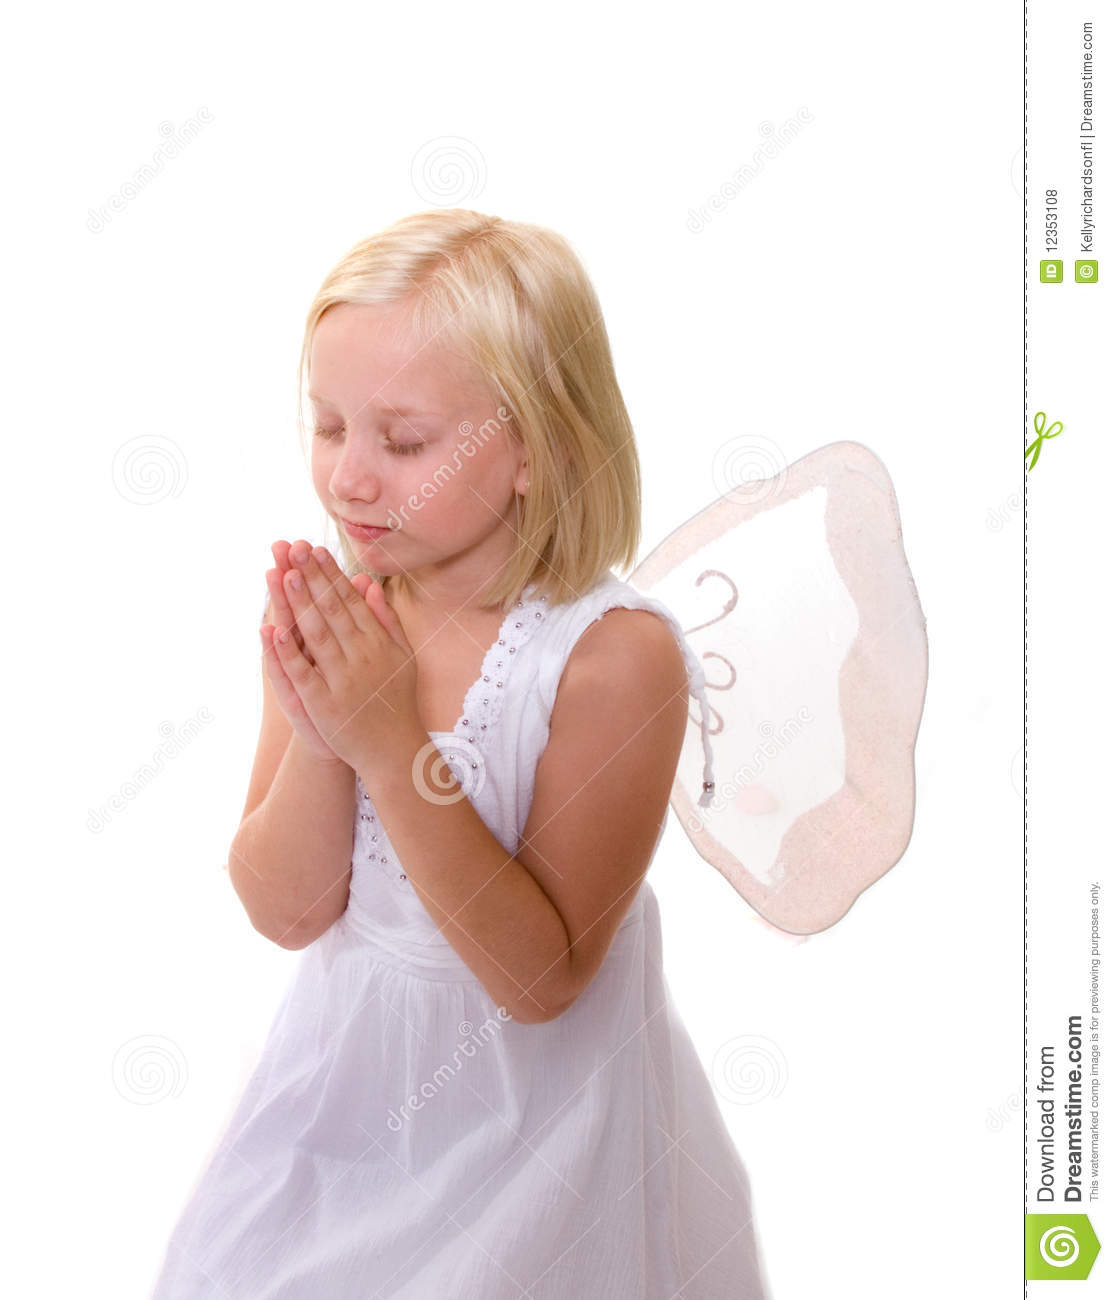 Little angel girl praying wearing wings royalty free stock photos image 12353108 - Pics of small little girls ...